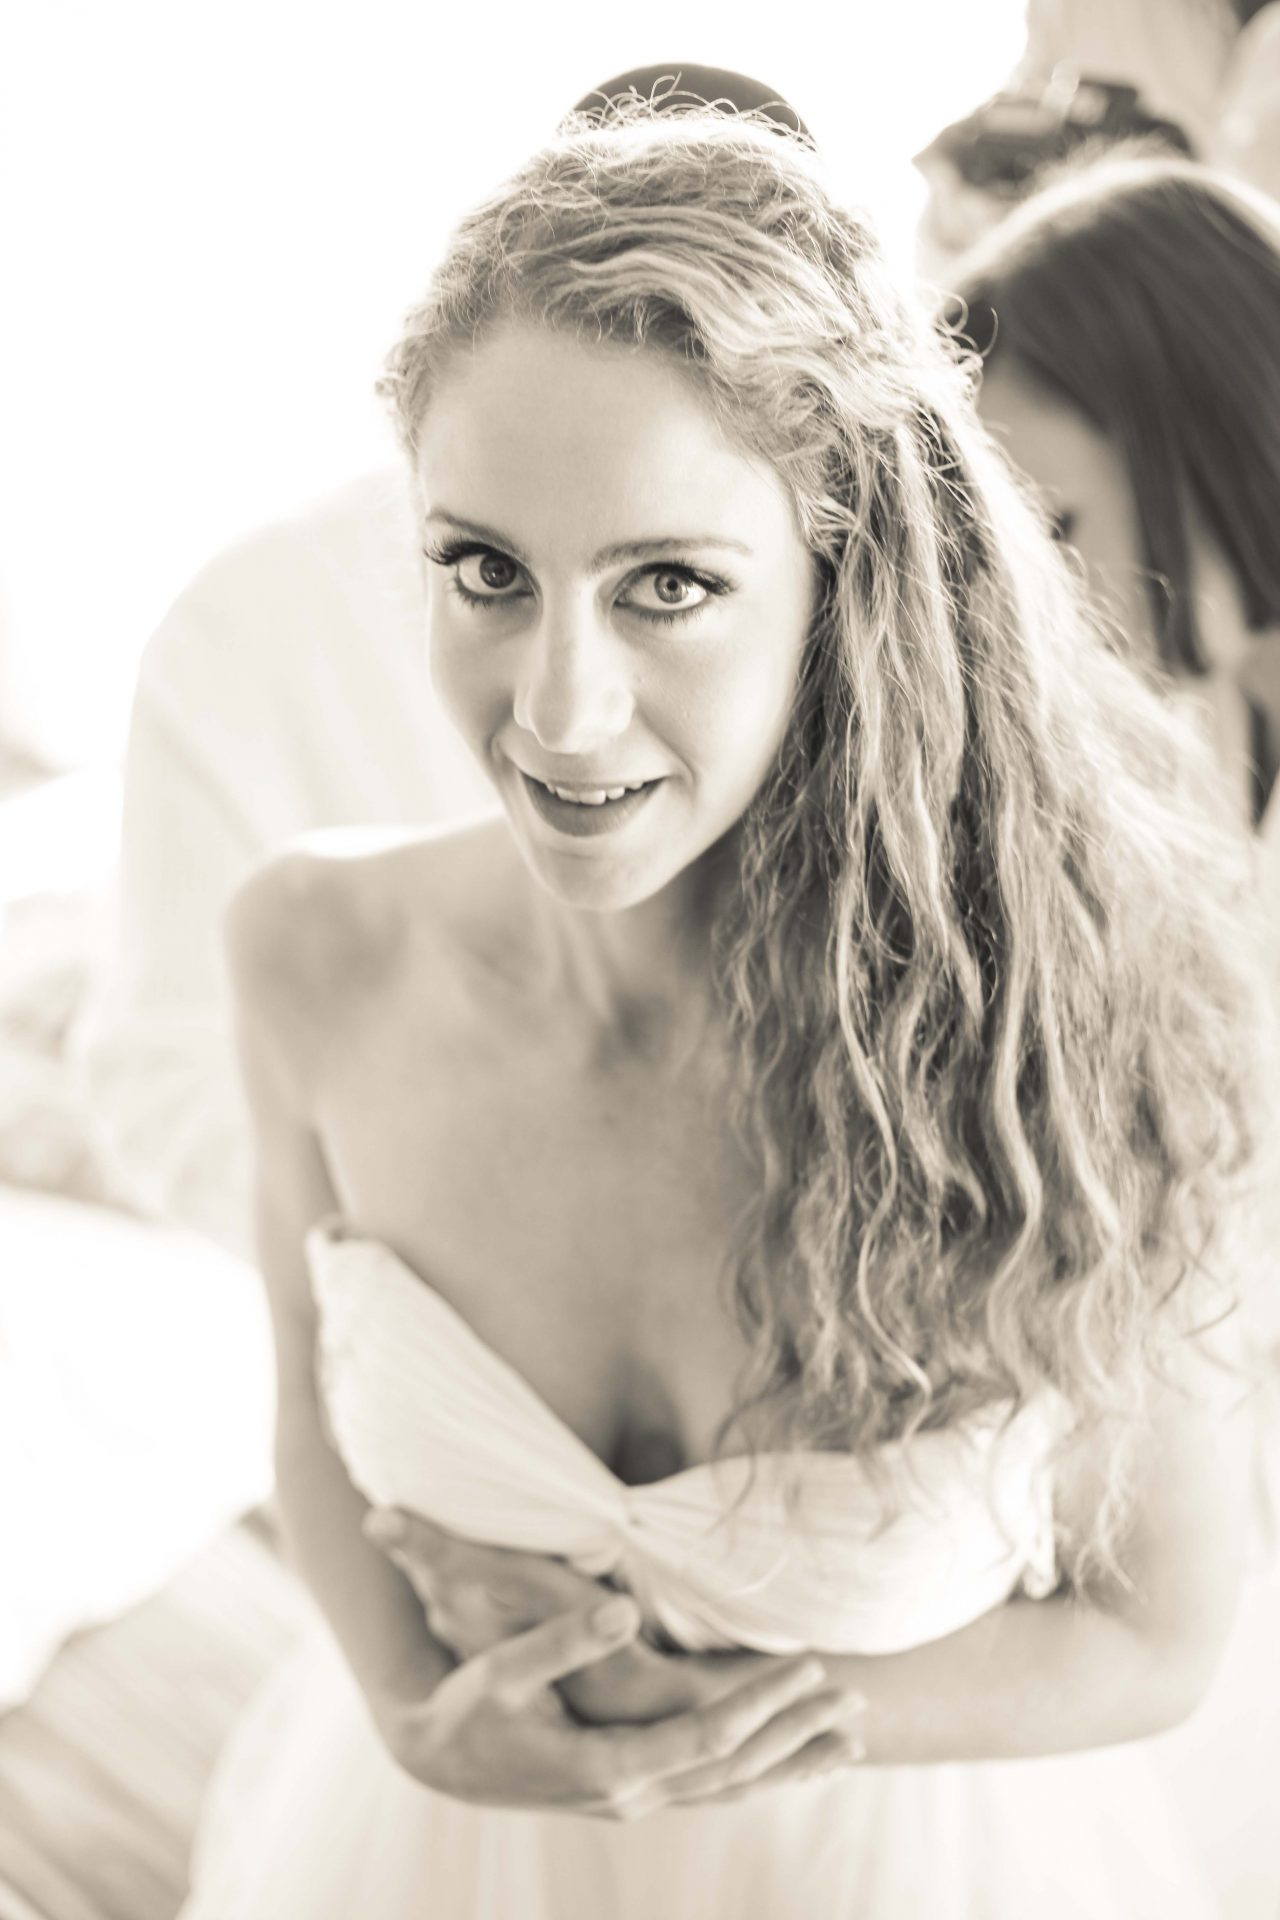 lorein-and-david_elana-van-zyl-overberg-swellendam-photographer-de-uijlenes-7608